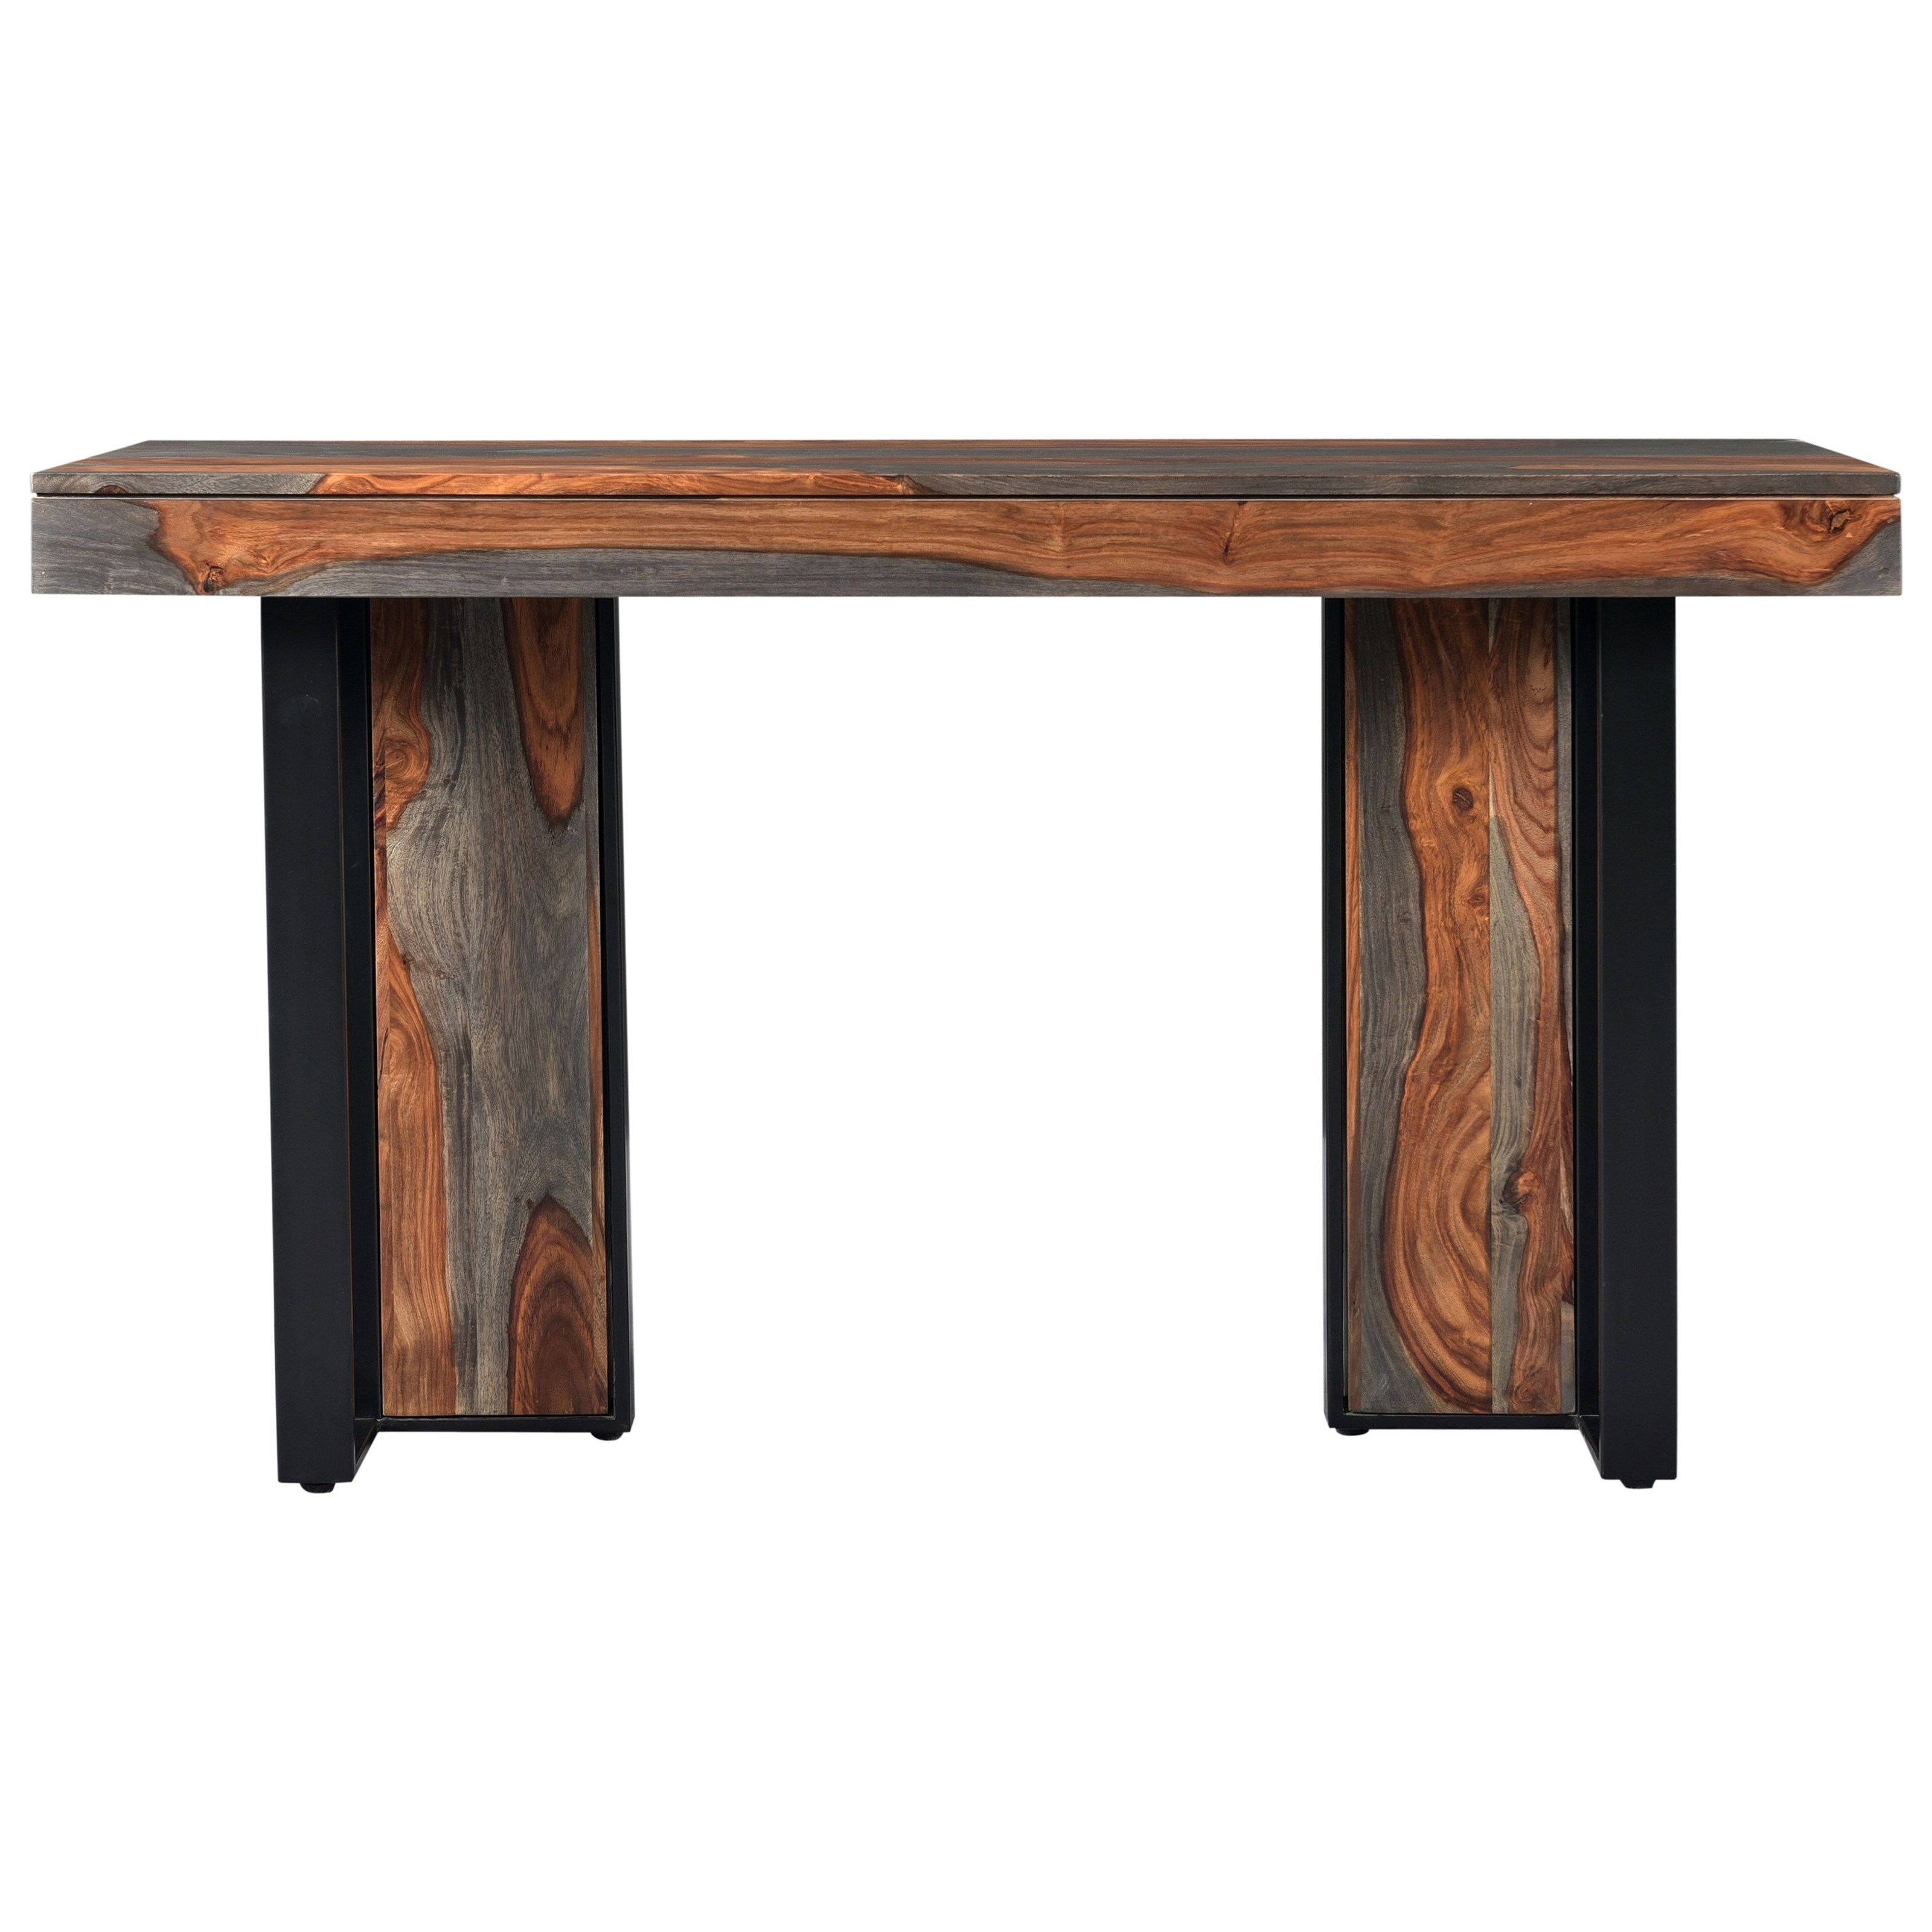 Sierra Console Table by Coast to Coast Imports at Prime Brothers Furniture